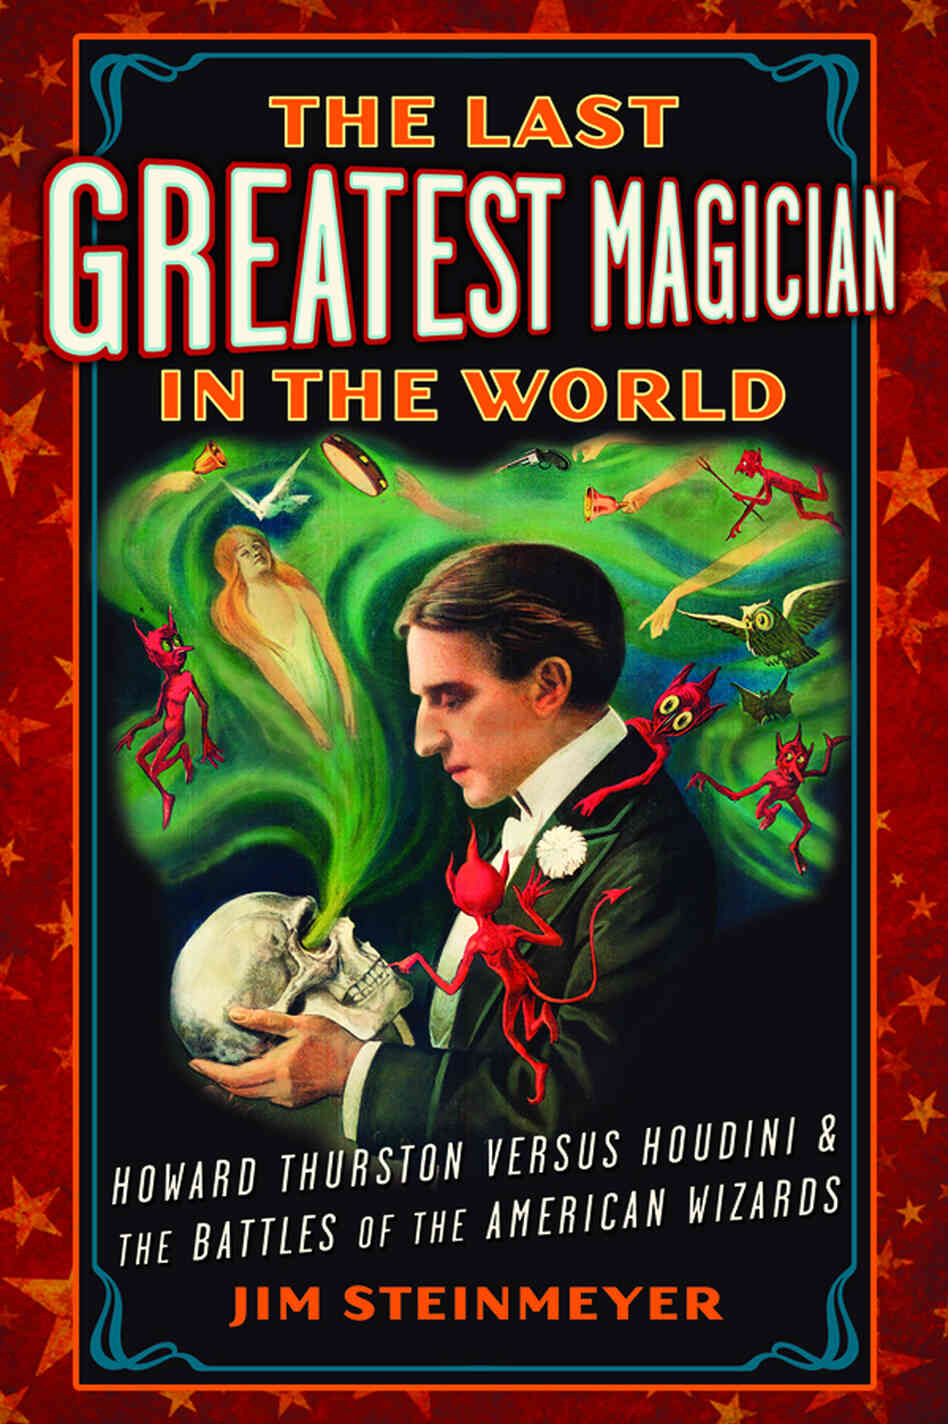 The Last Greatest Magician in the World by Jim Steinmeyer